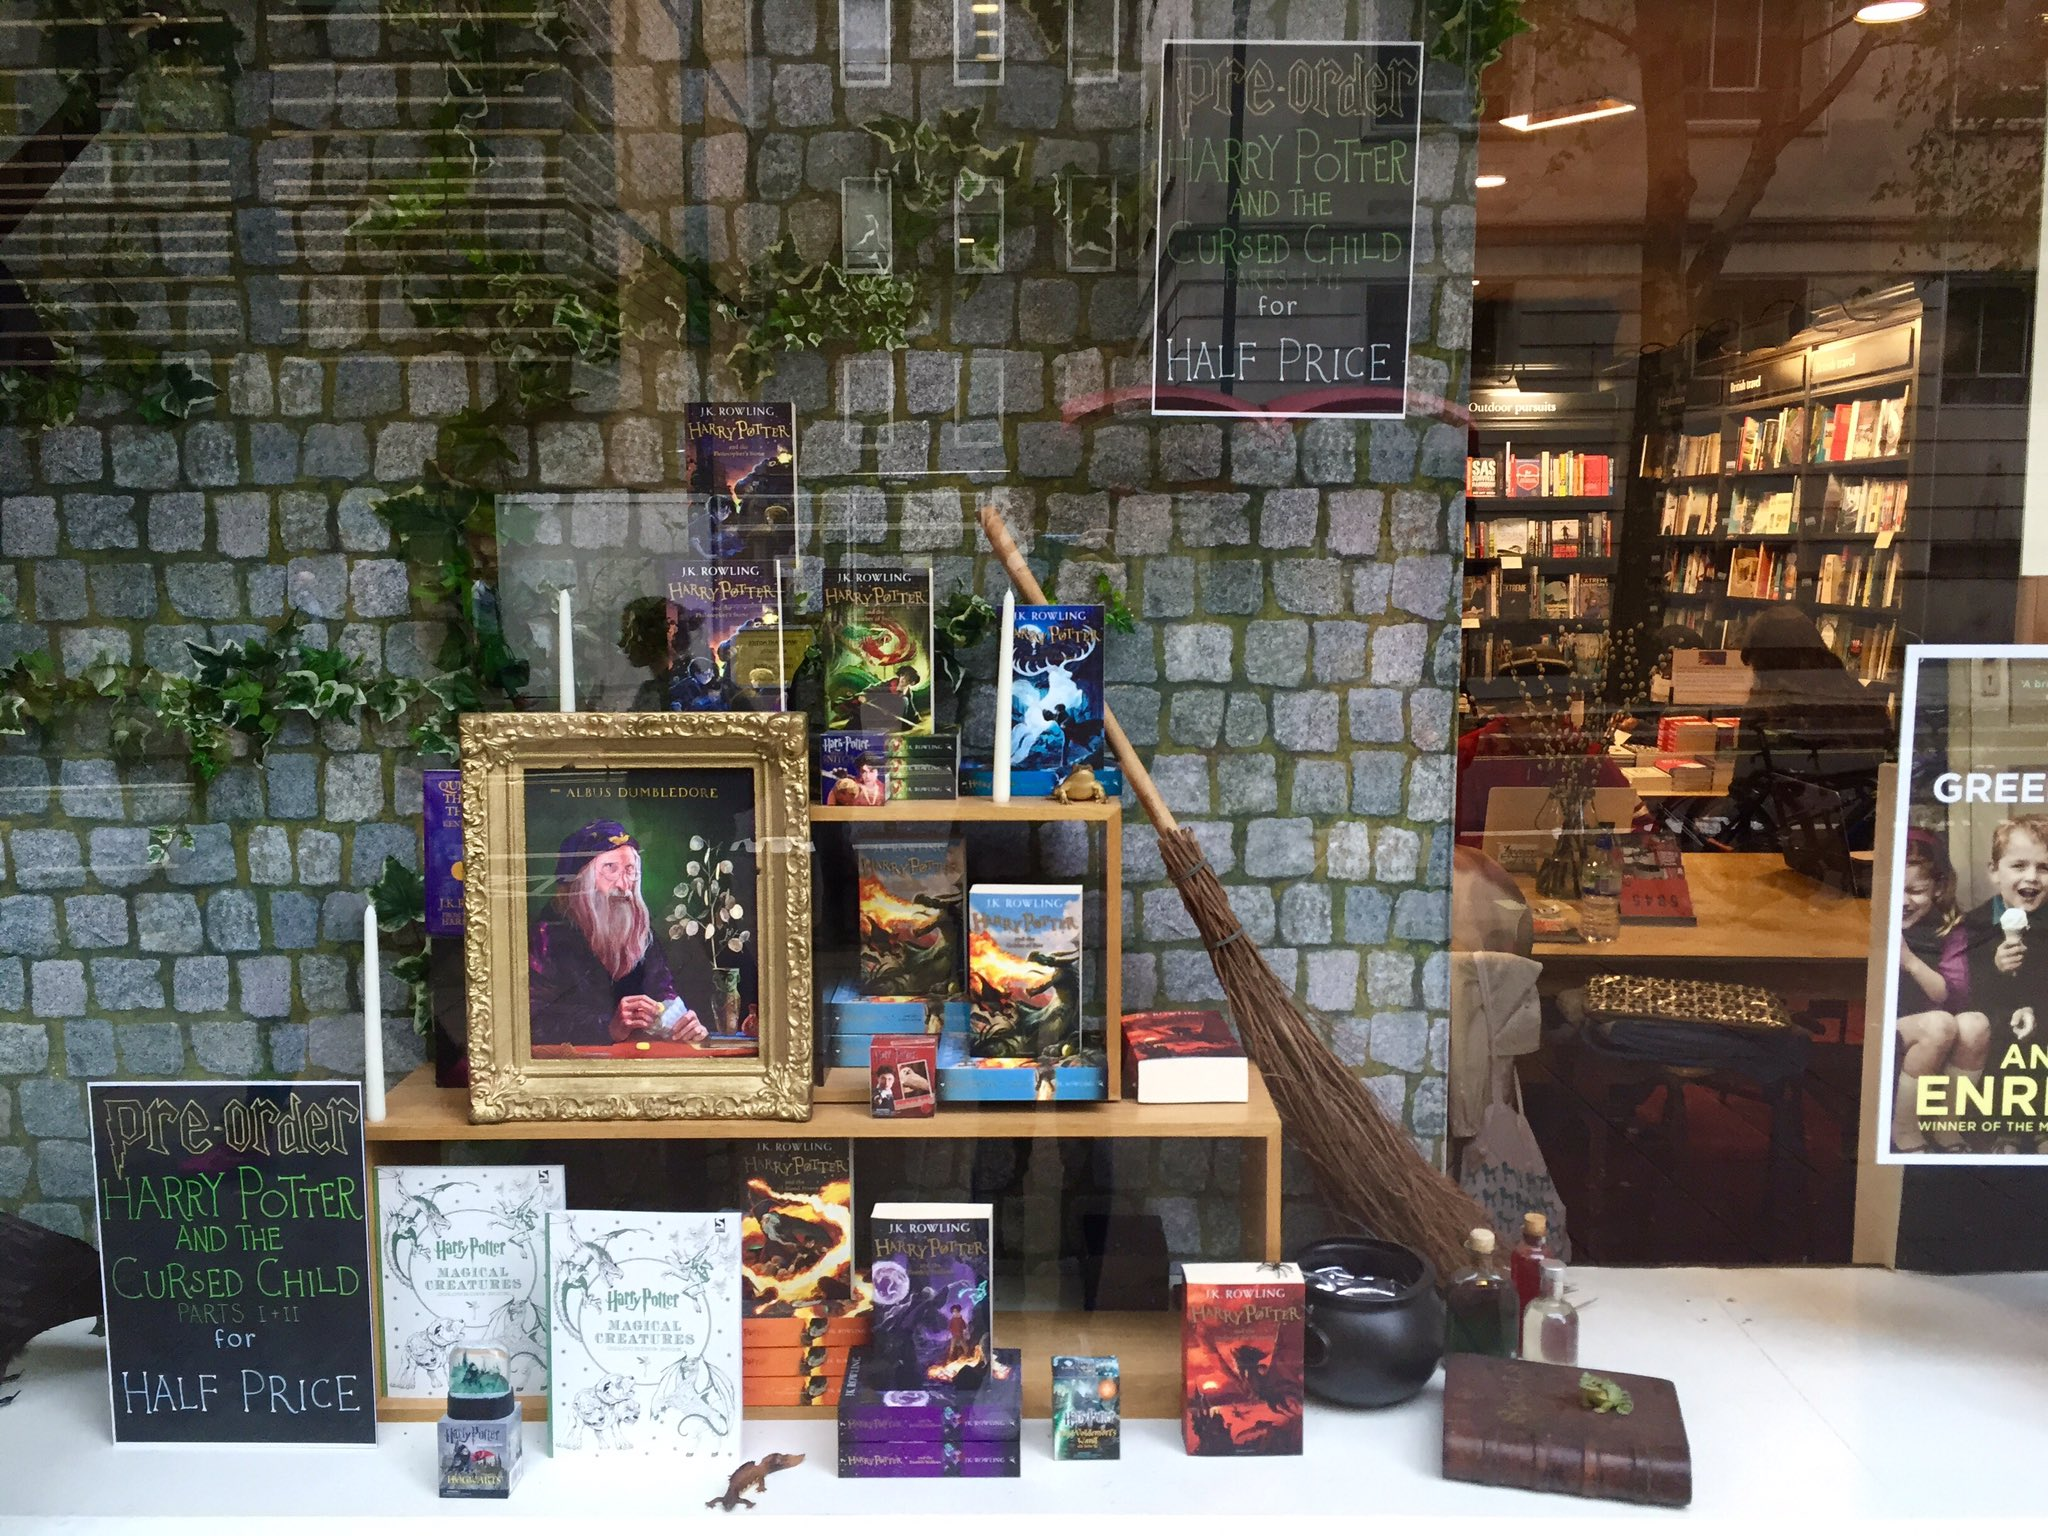 Harry Potter Display Harry Potter On Twitter Quotwhen You Spot That Harry Potter